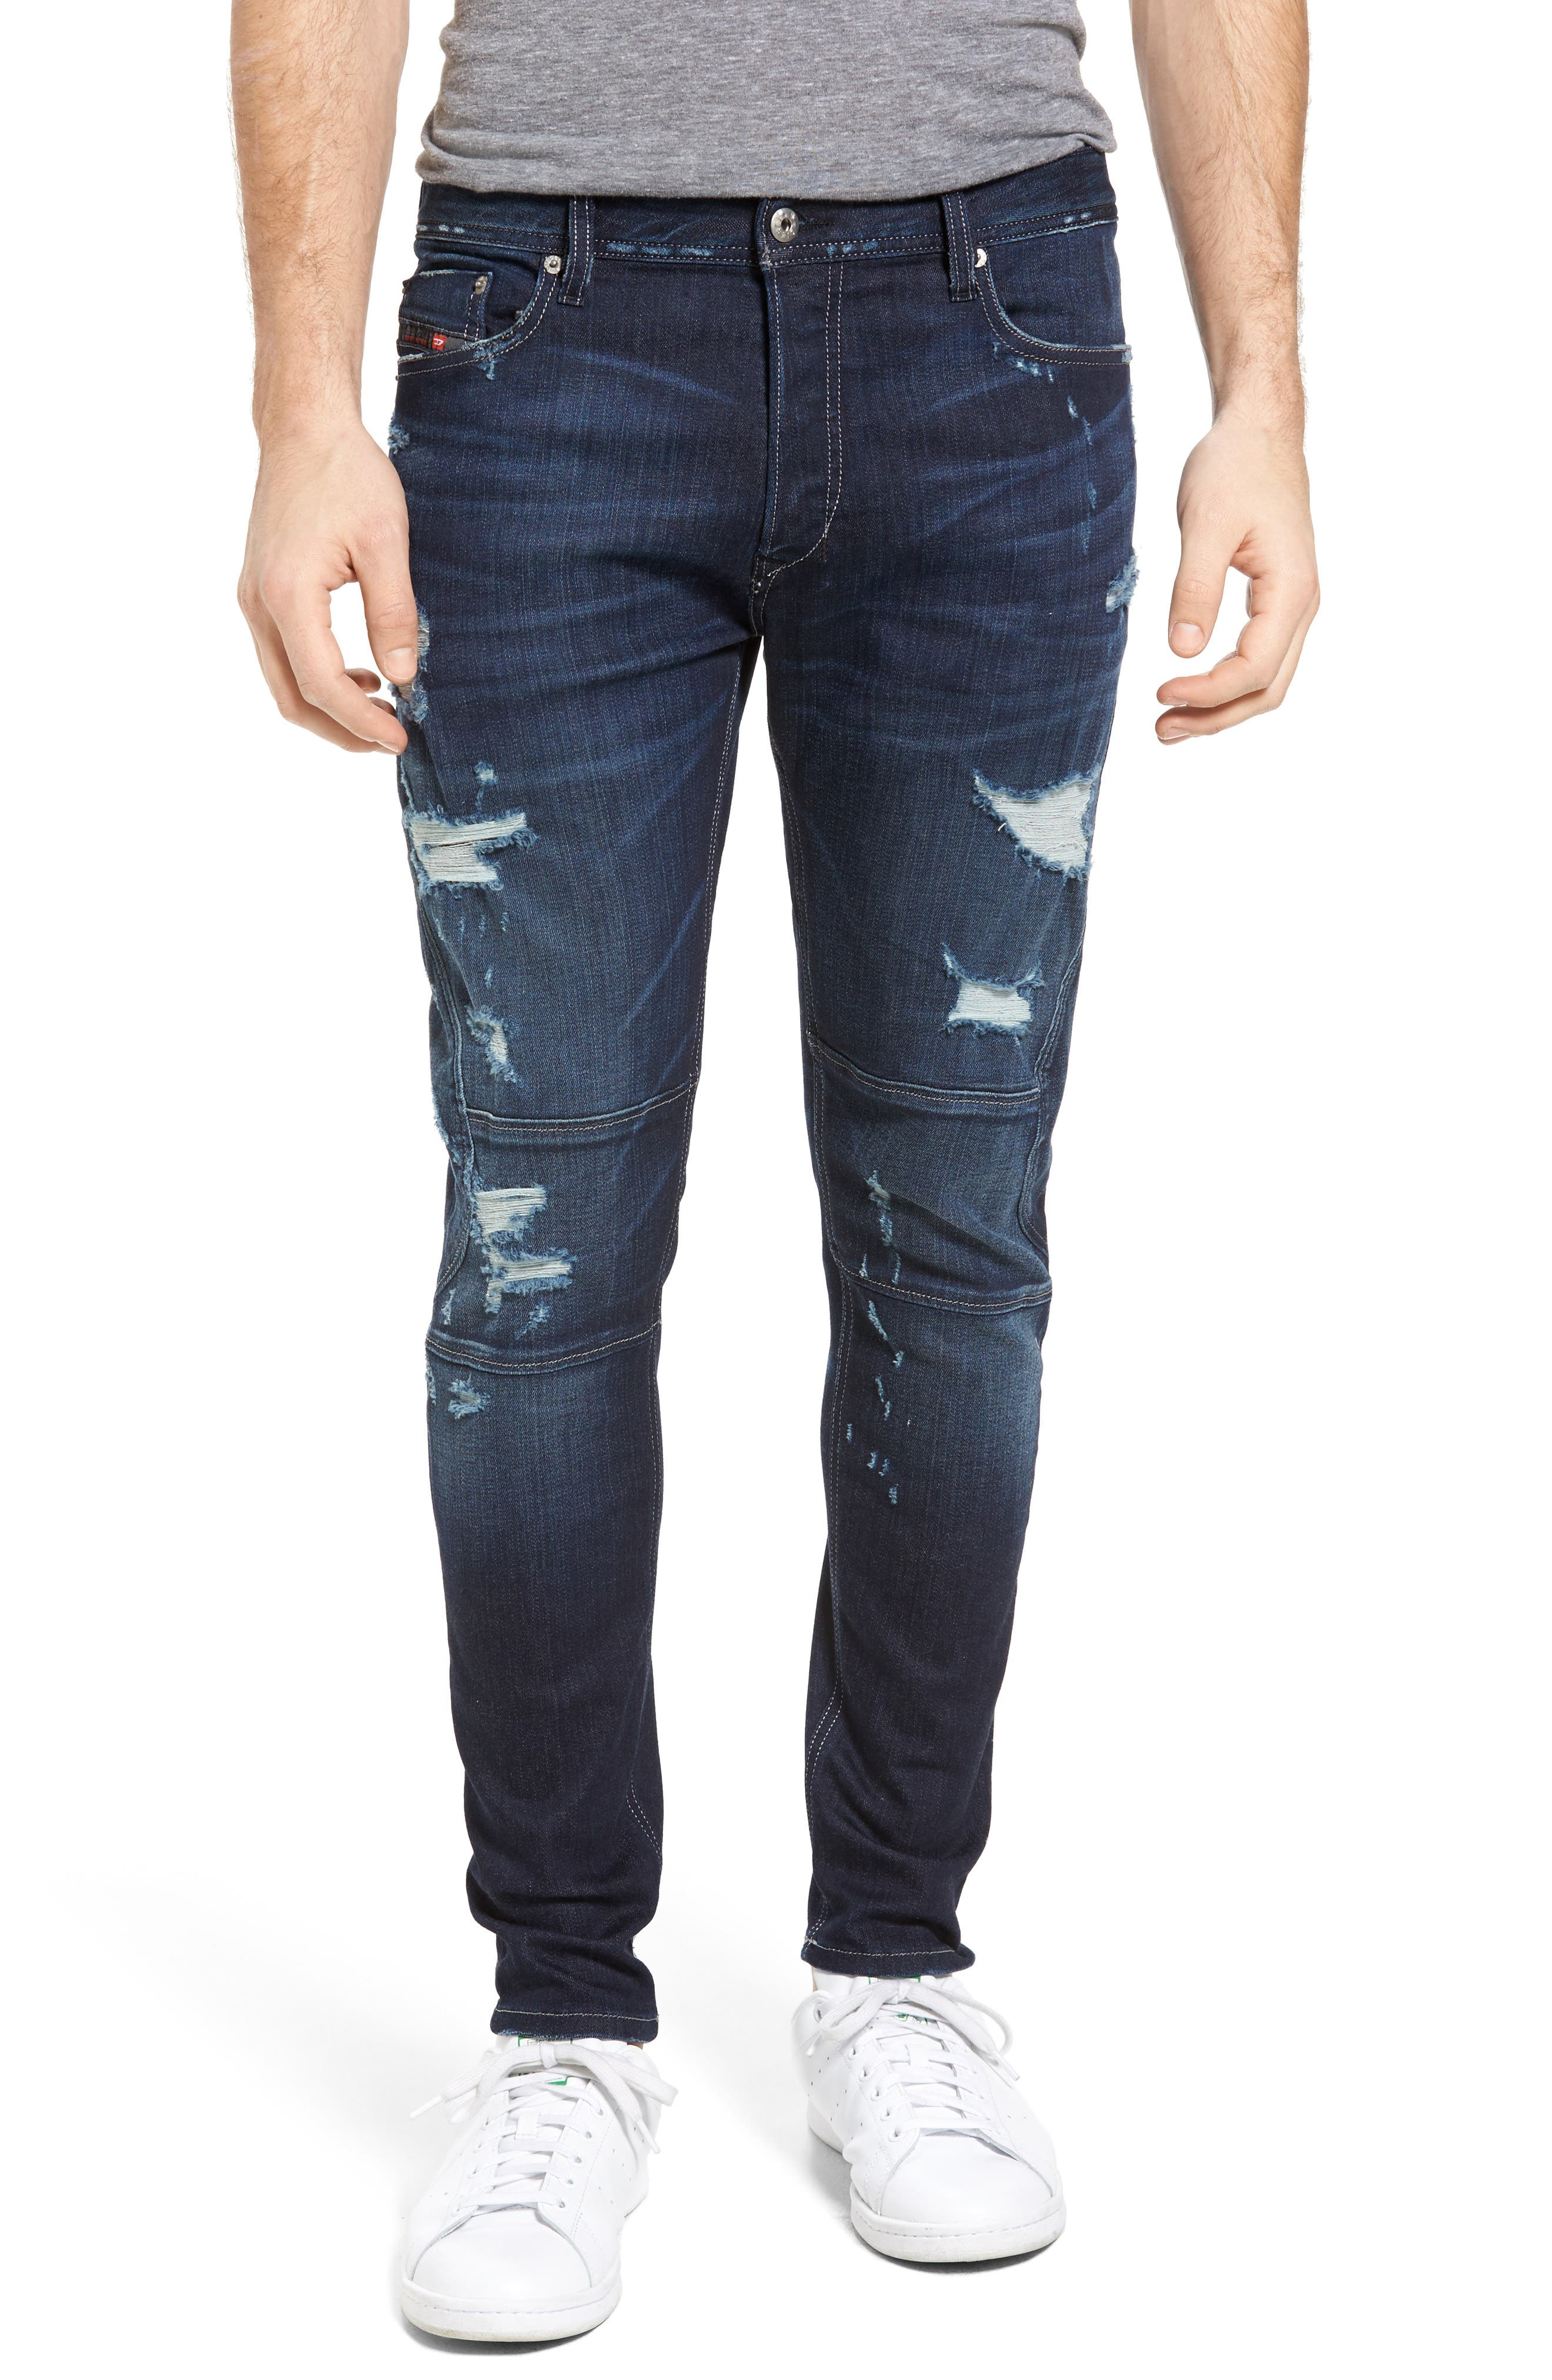 T-Ride Skinny Fit Moto Jeans,                         Main,                         color, 400